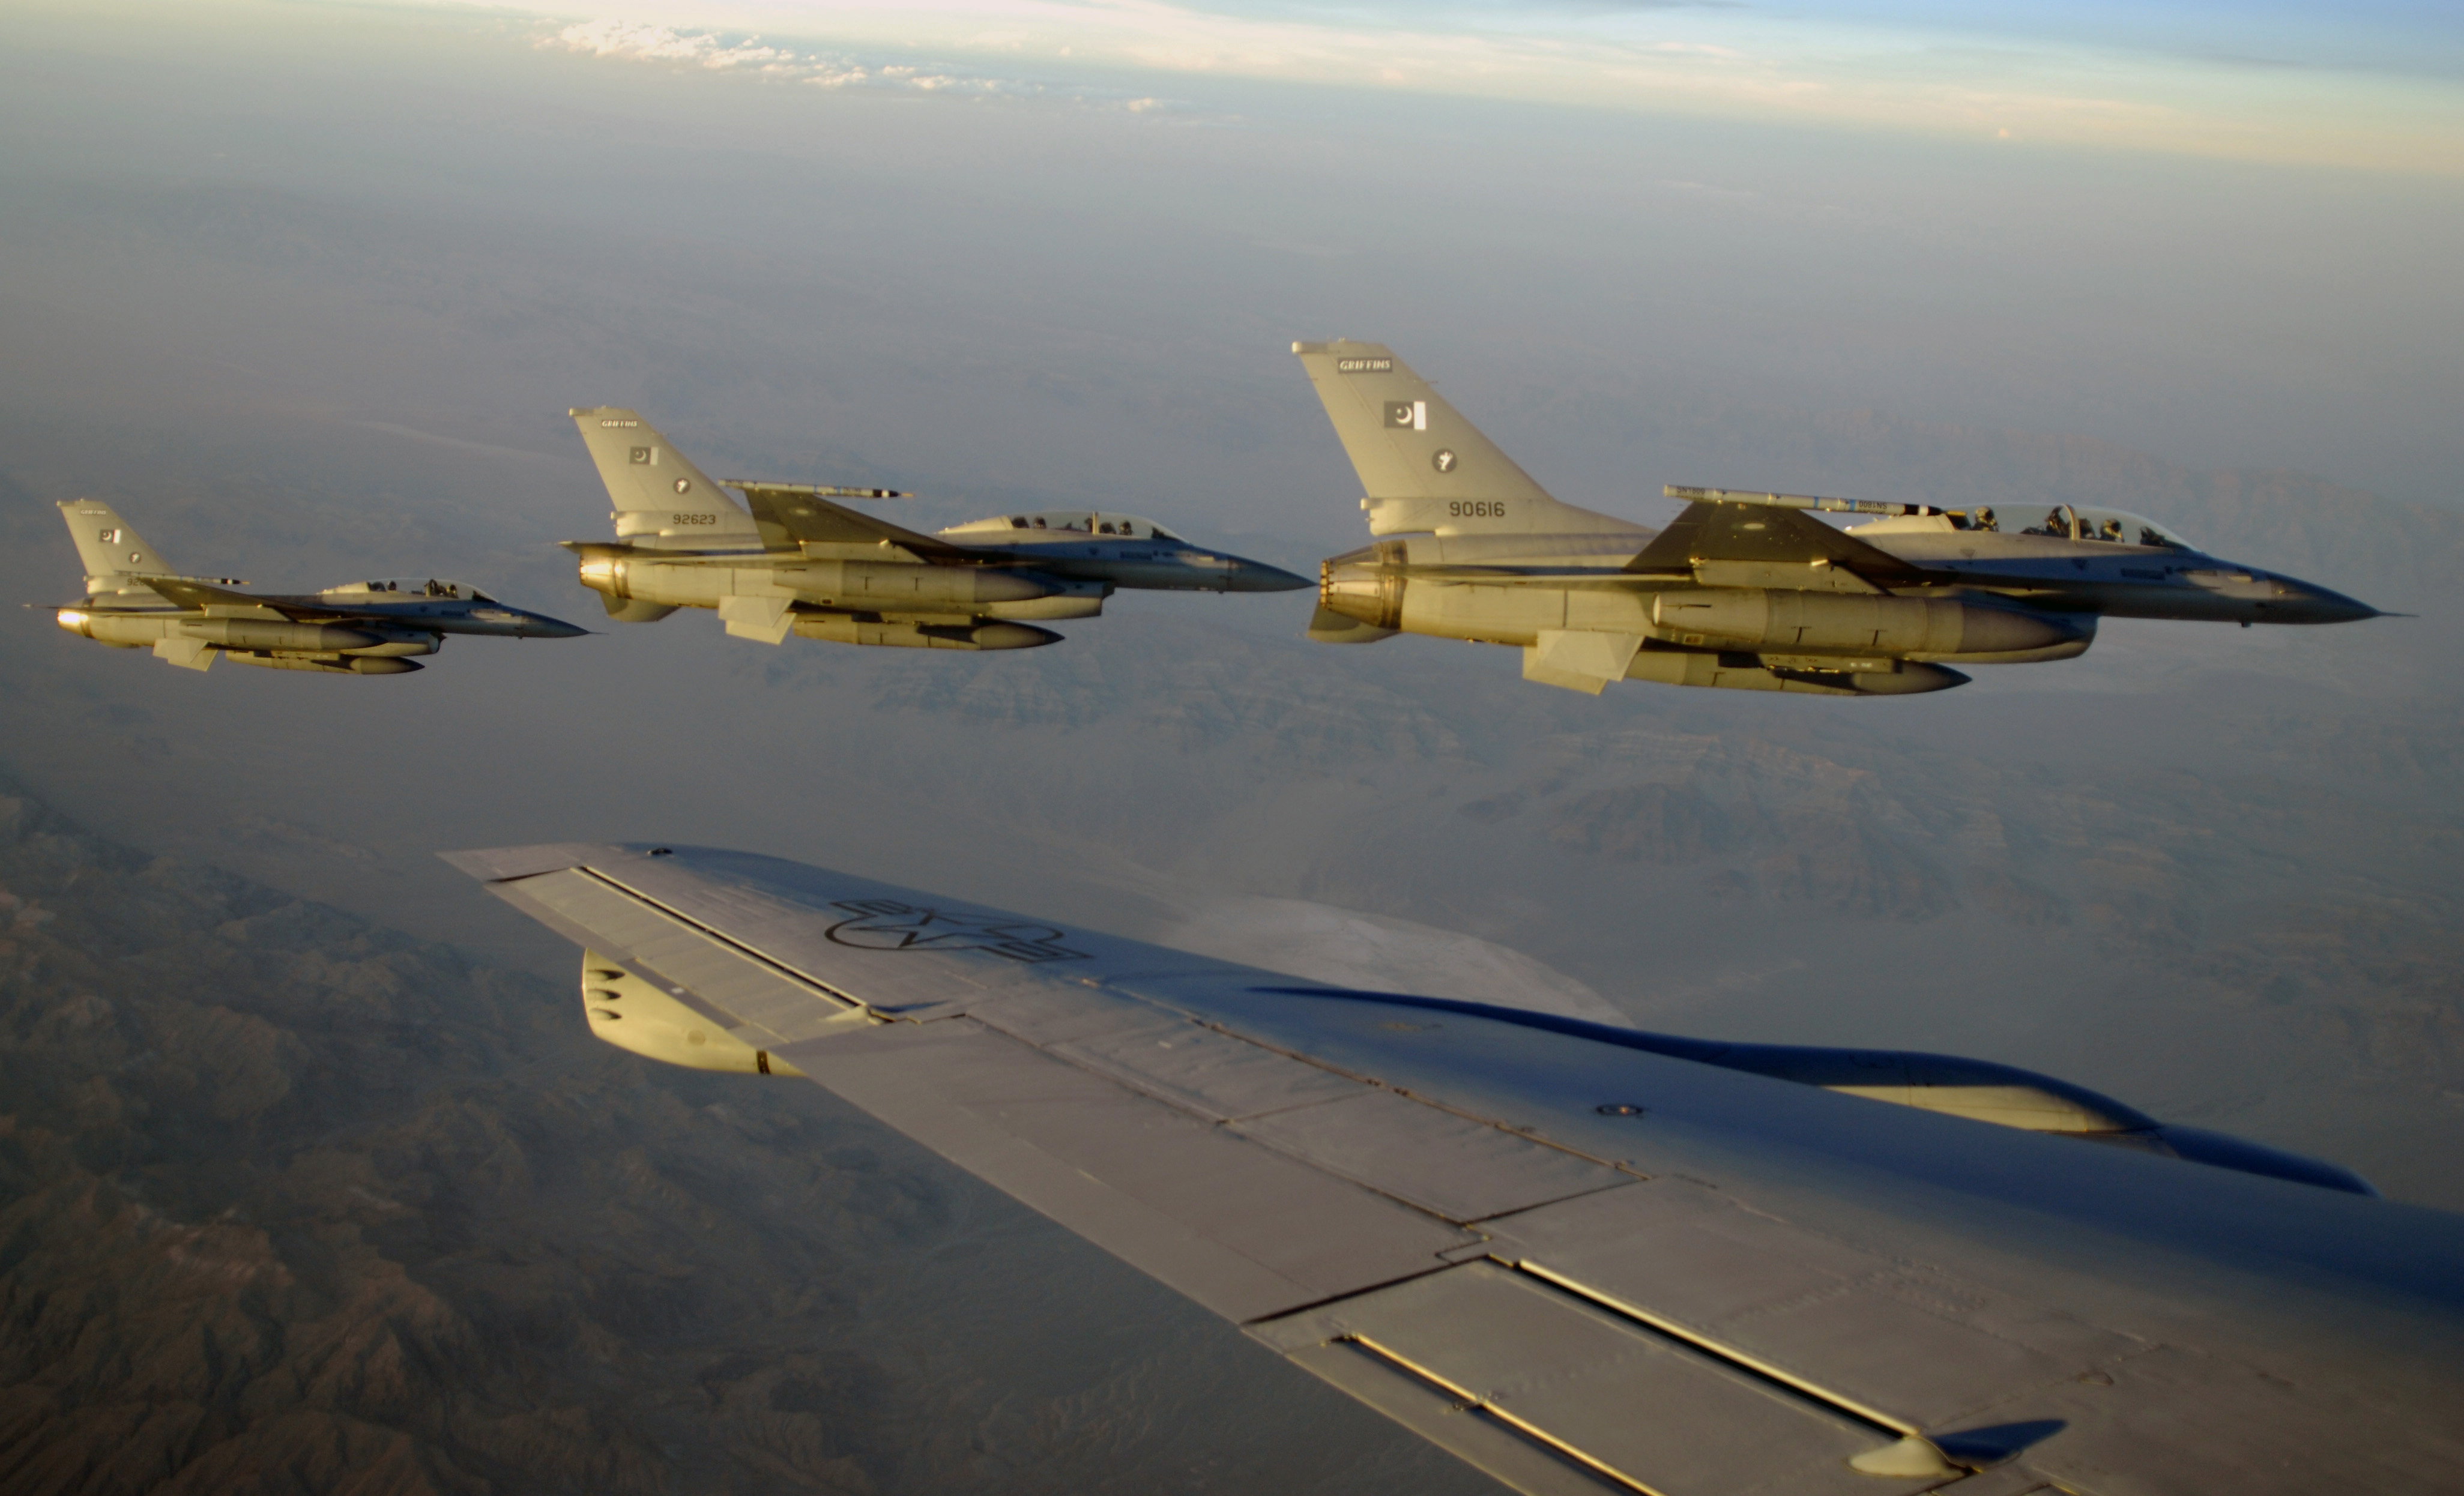 The Pakistan Air Force's F-16A/B/C/D fighters